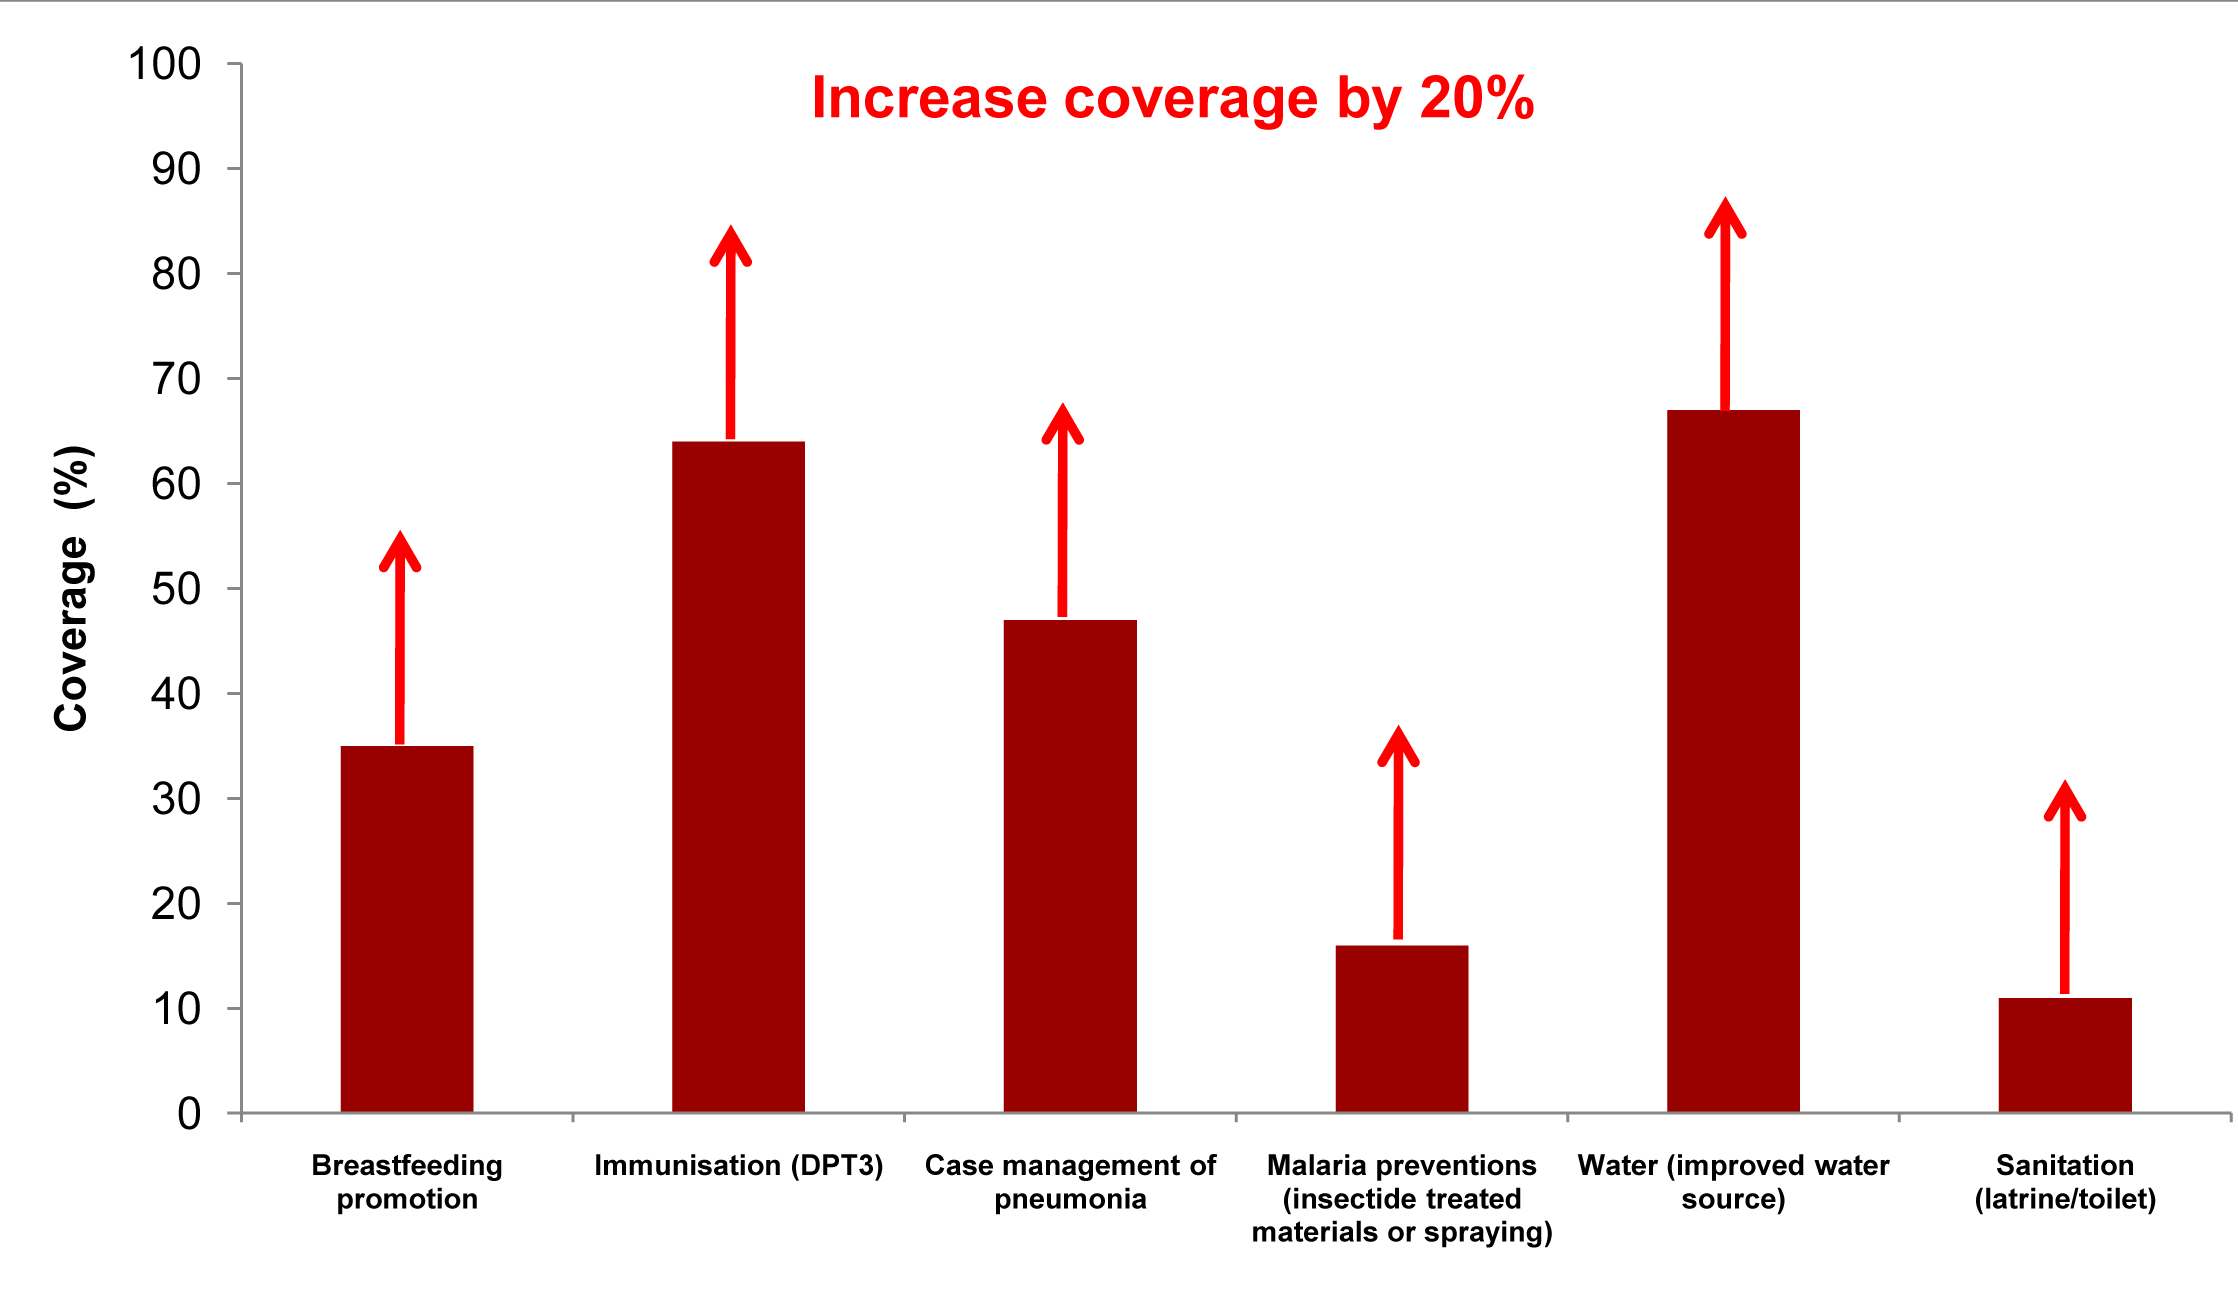 Achievable coverage increases of 20% for outreach/community interventions in Uganda.